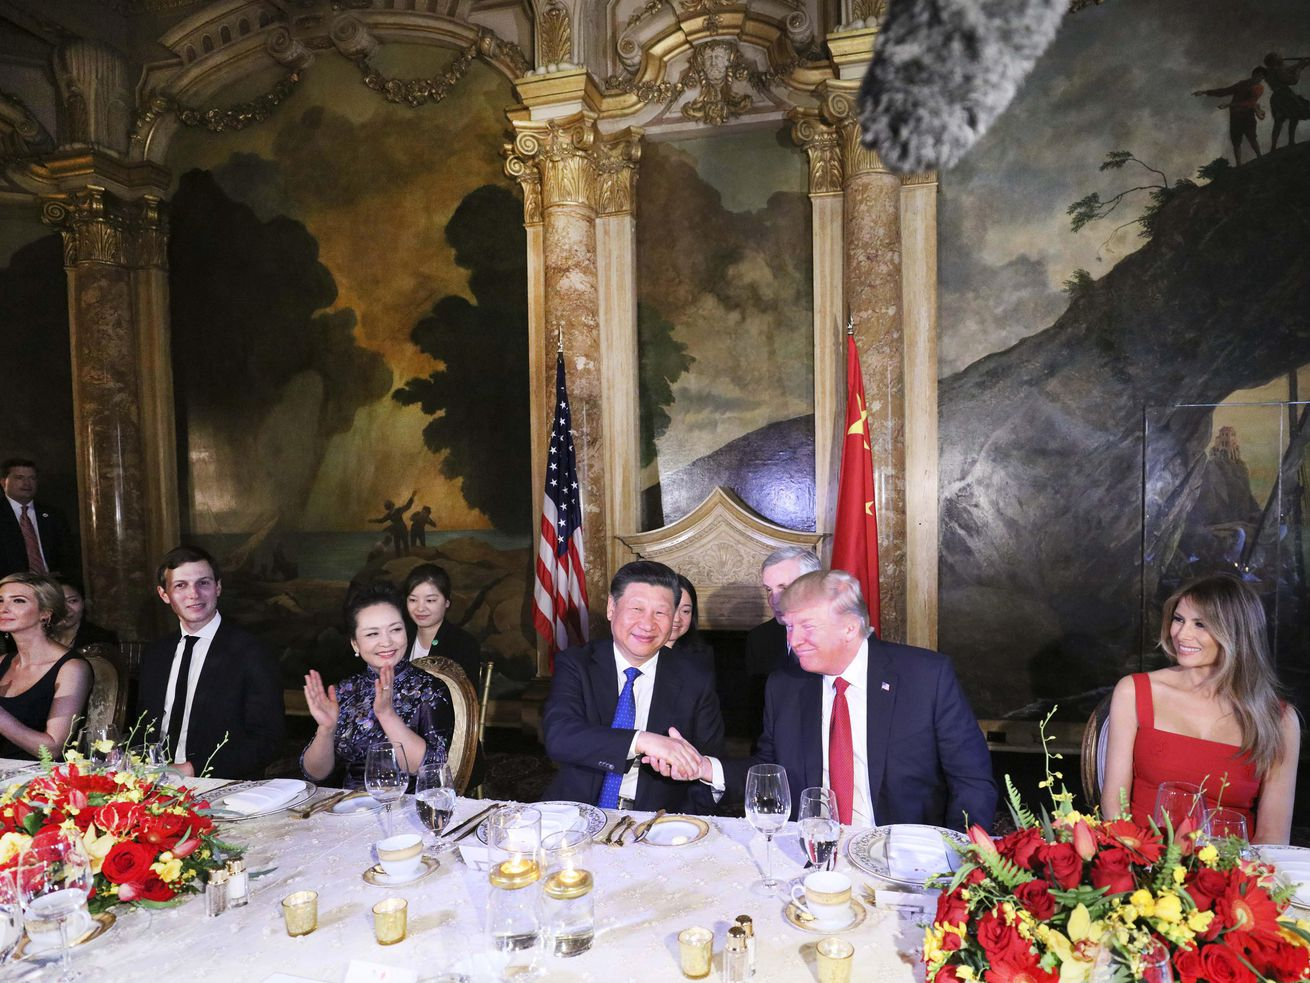 Foreign guest workers likely prepared Trump's banquet for Chinese President Xi Jinping at Mar-a-Lago in April 2017.